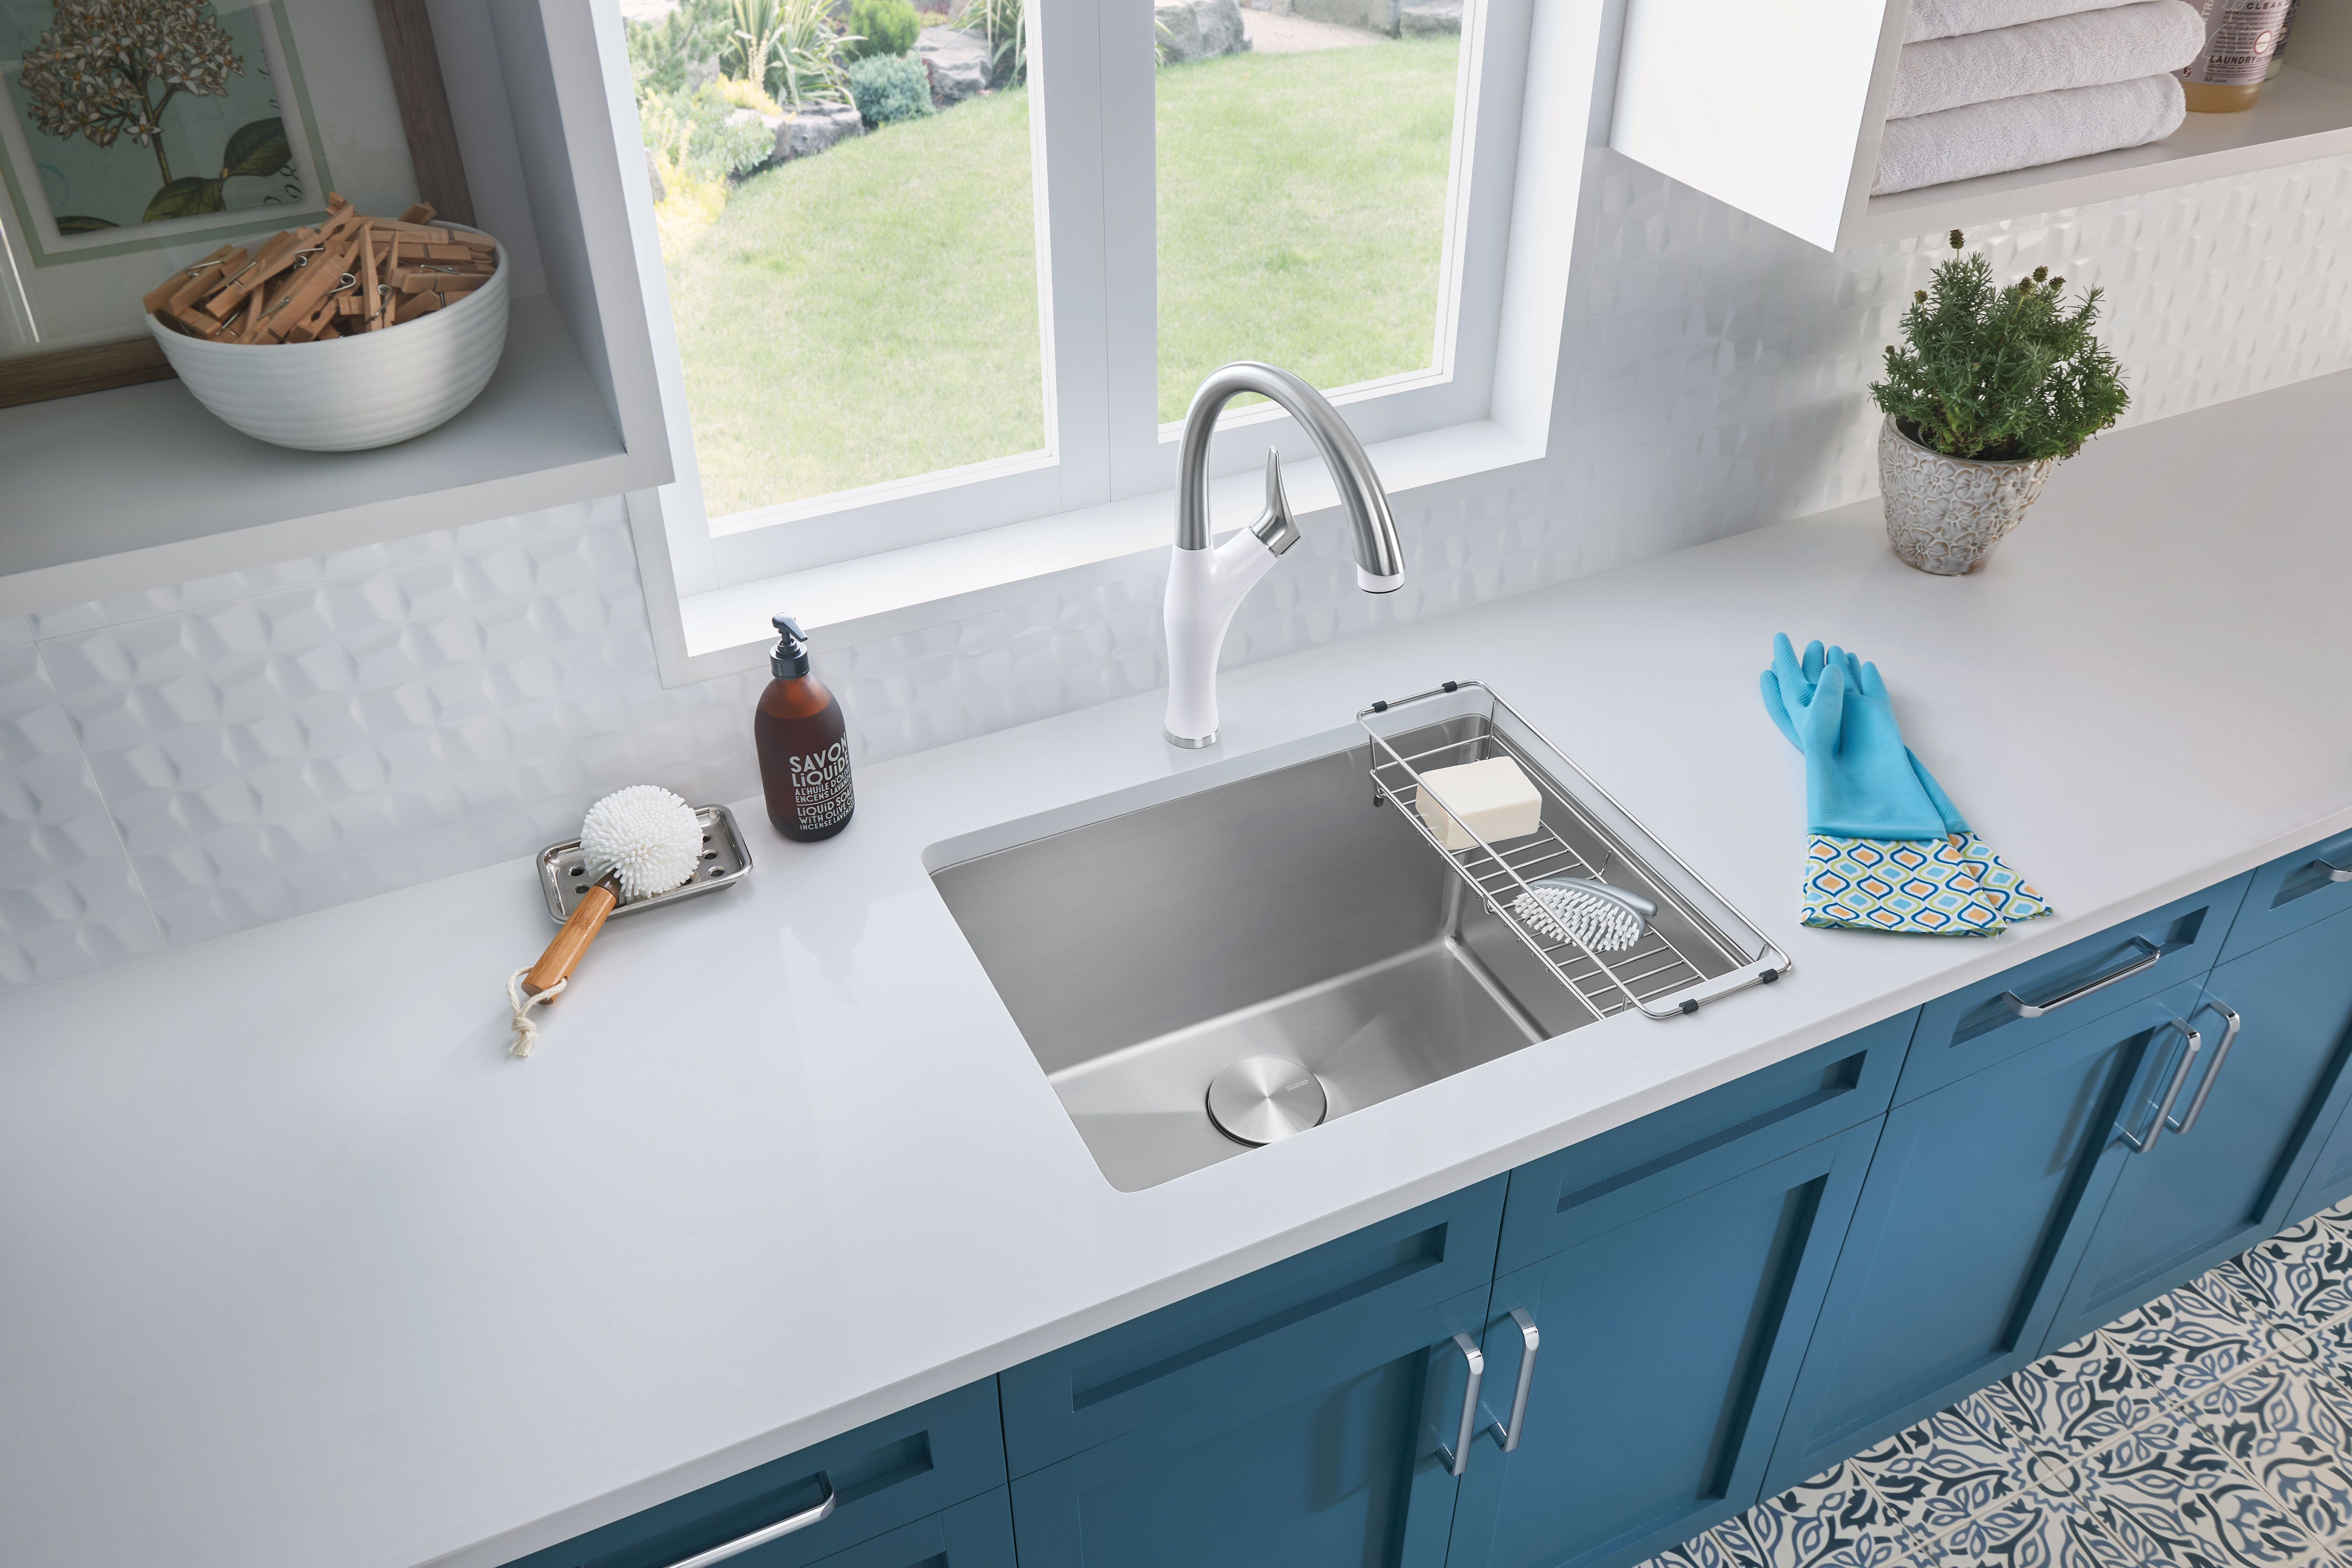 Modern Laundry Room With Stainless Steel Sink Sink Single Basin